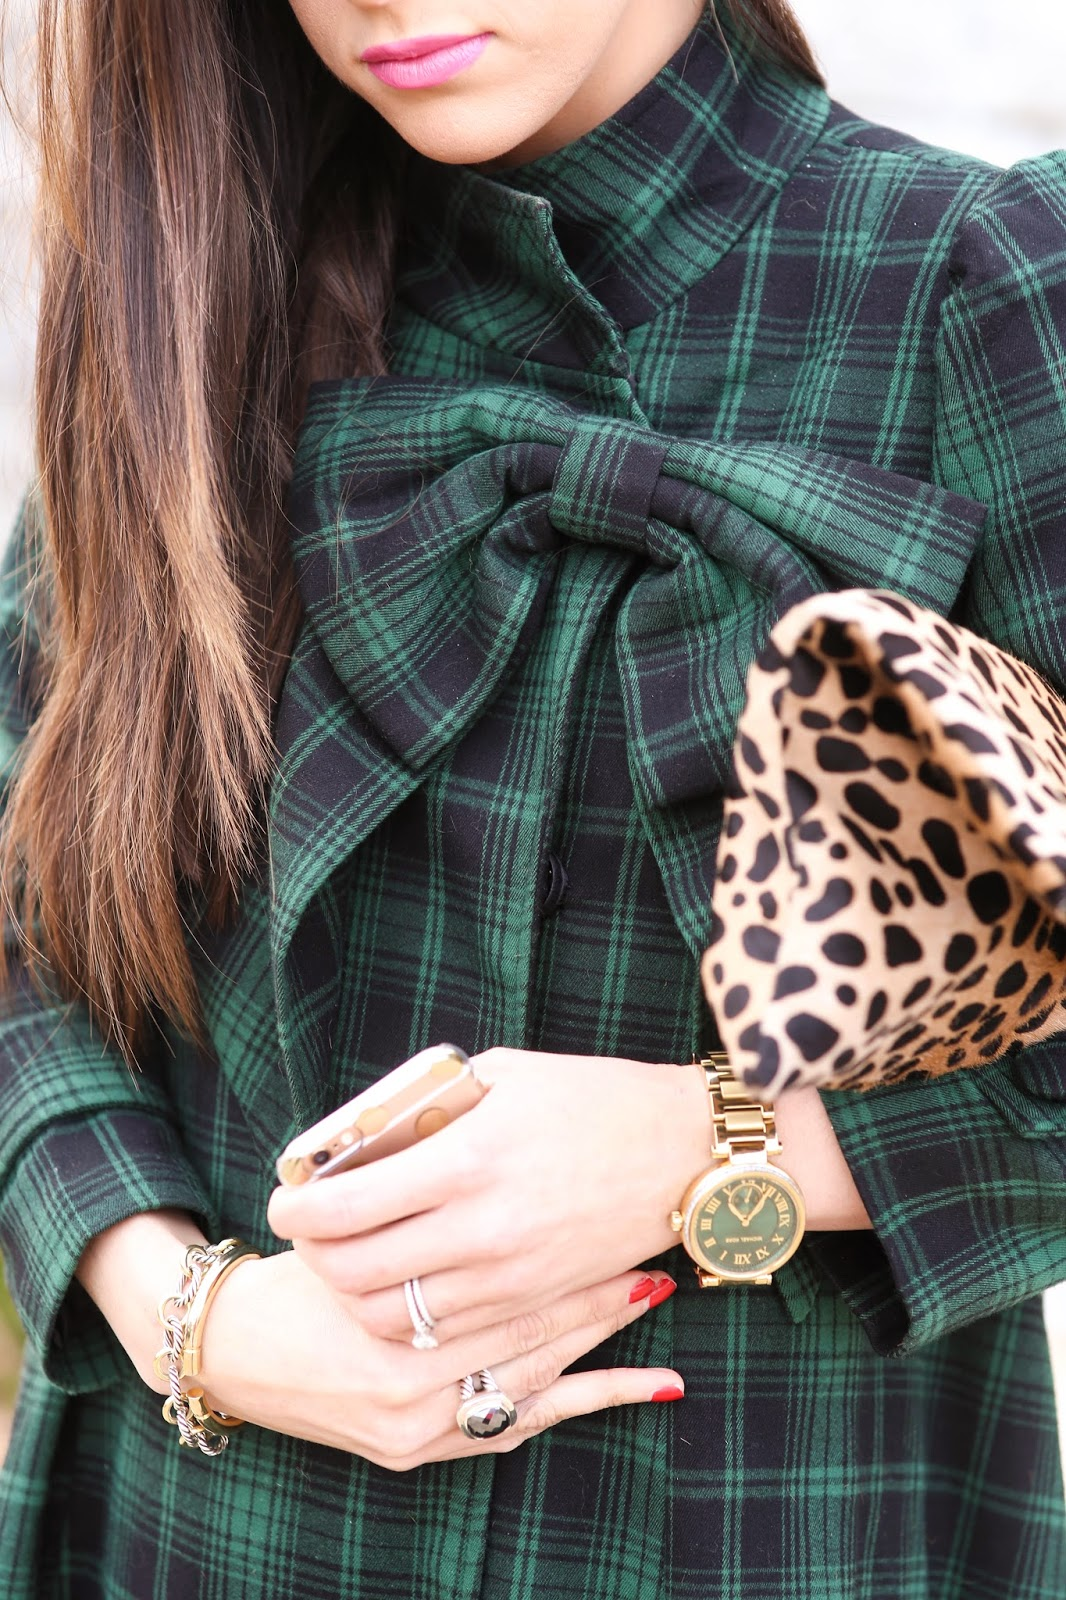 Green Tartan Dolly Dress with Big Bow and Leopard Clutch - Styling by thesweetestthingblog.com